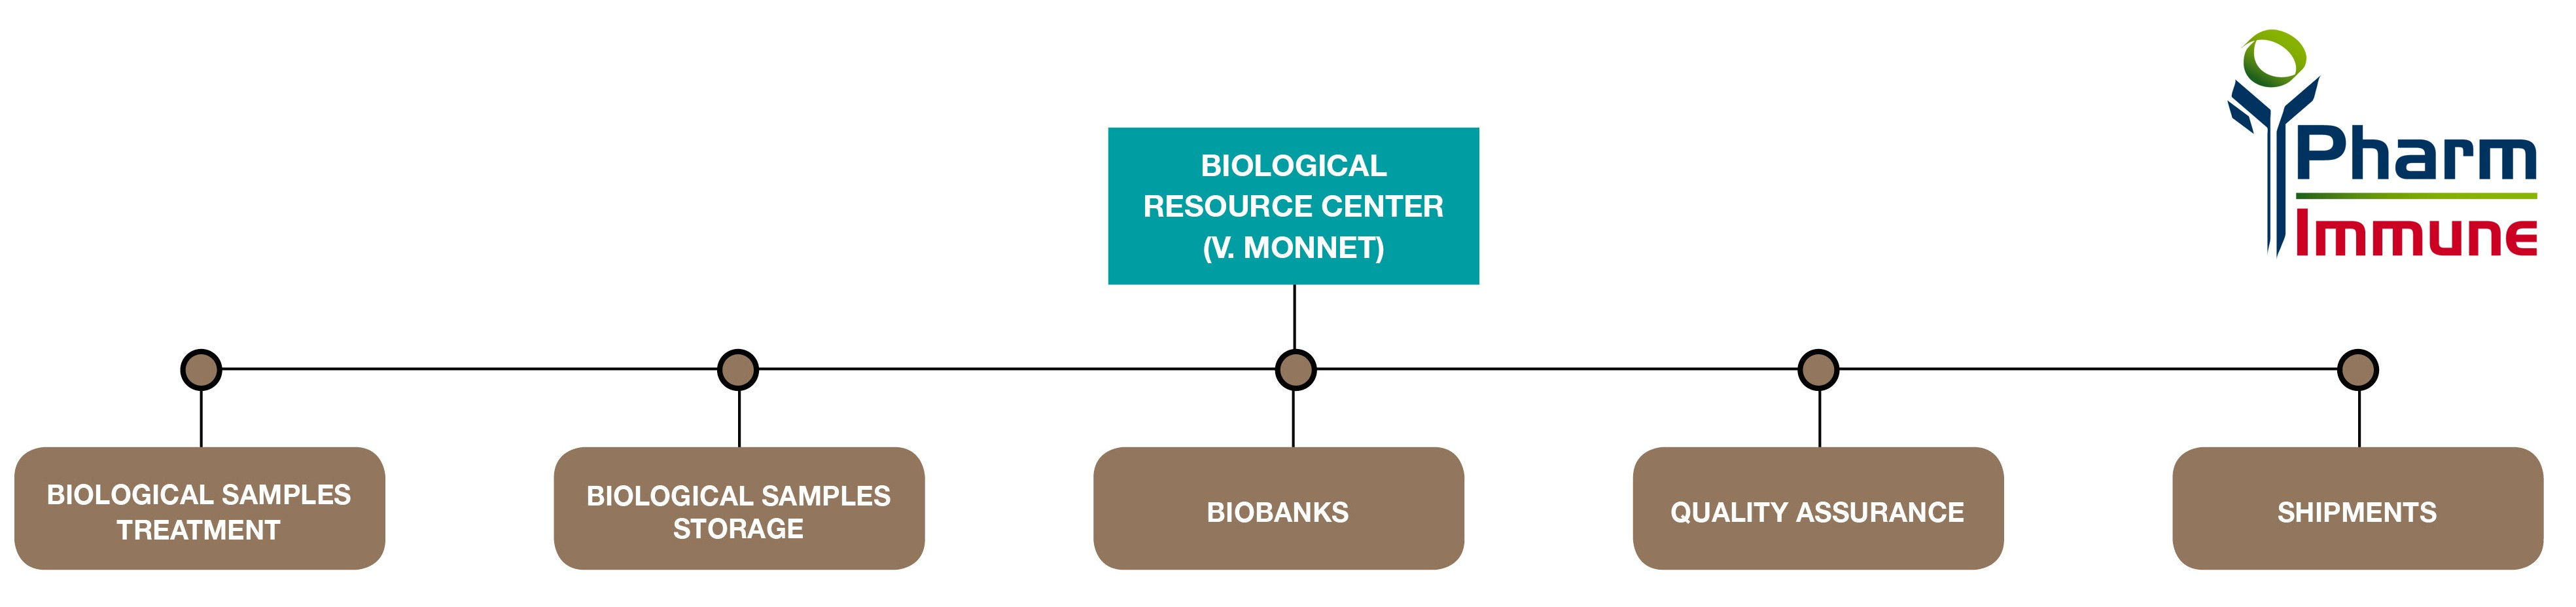 technologies-biological copie